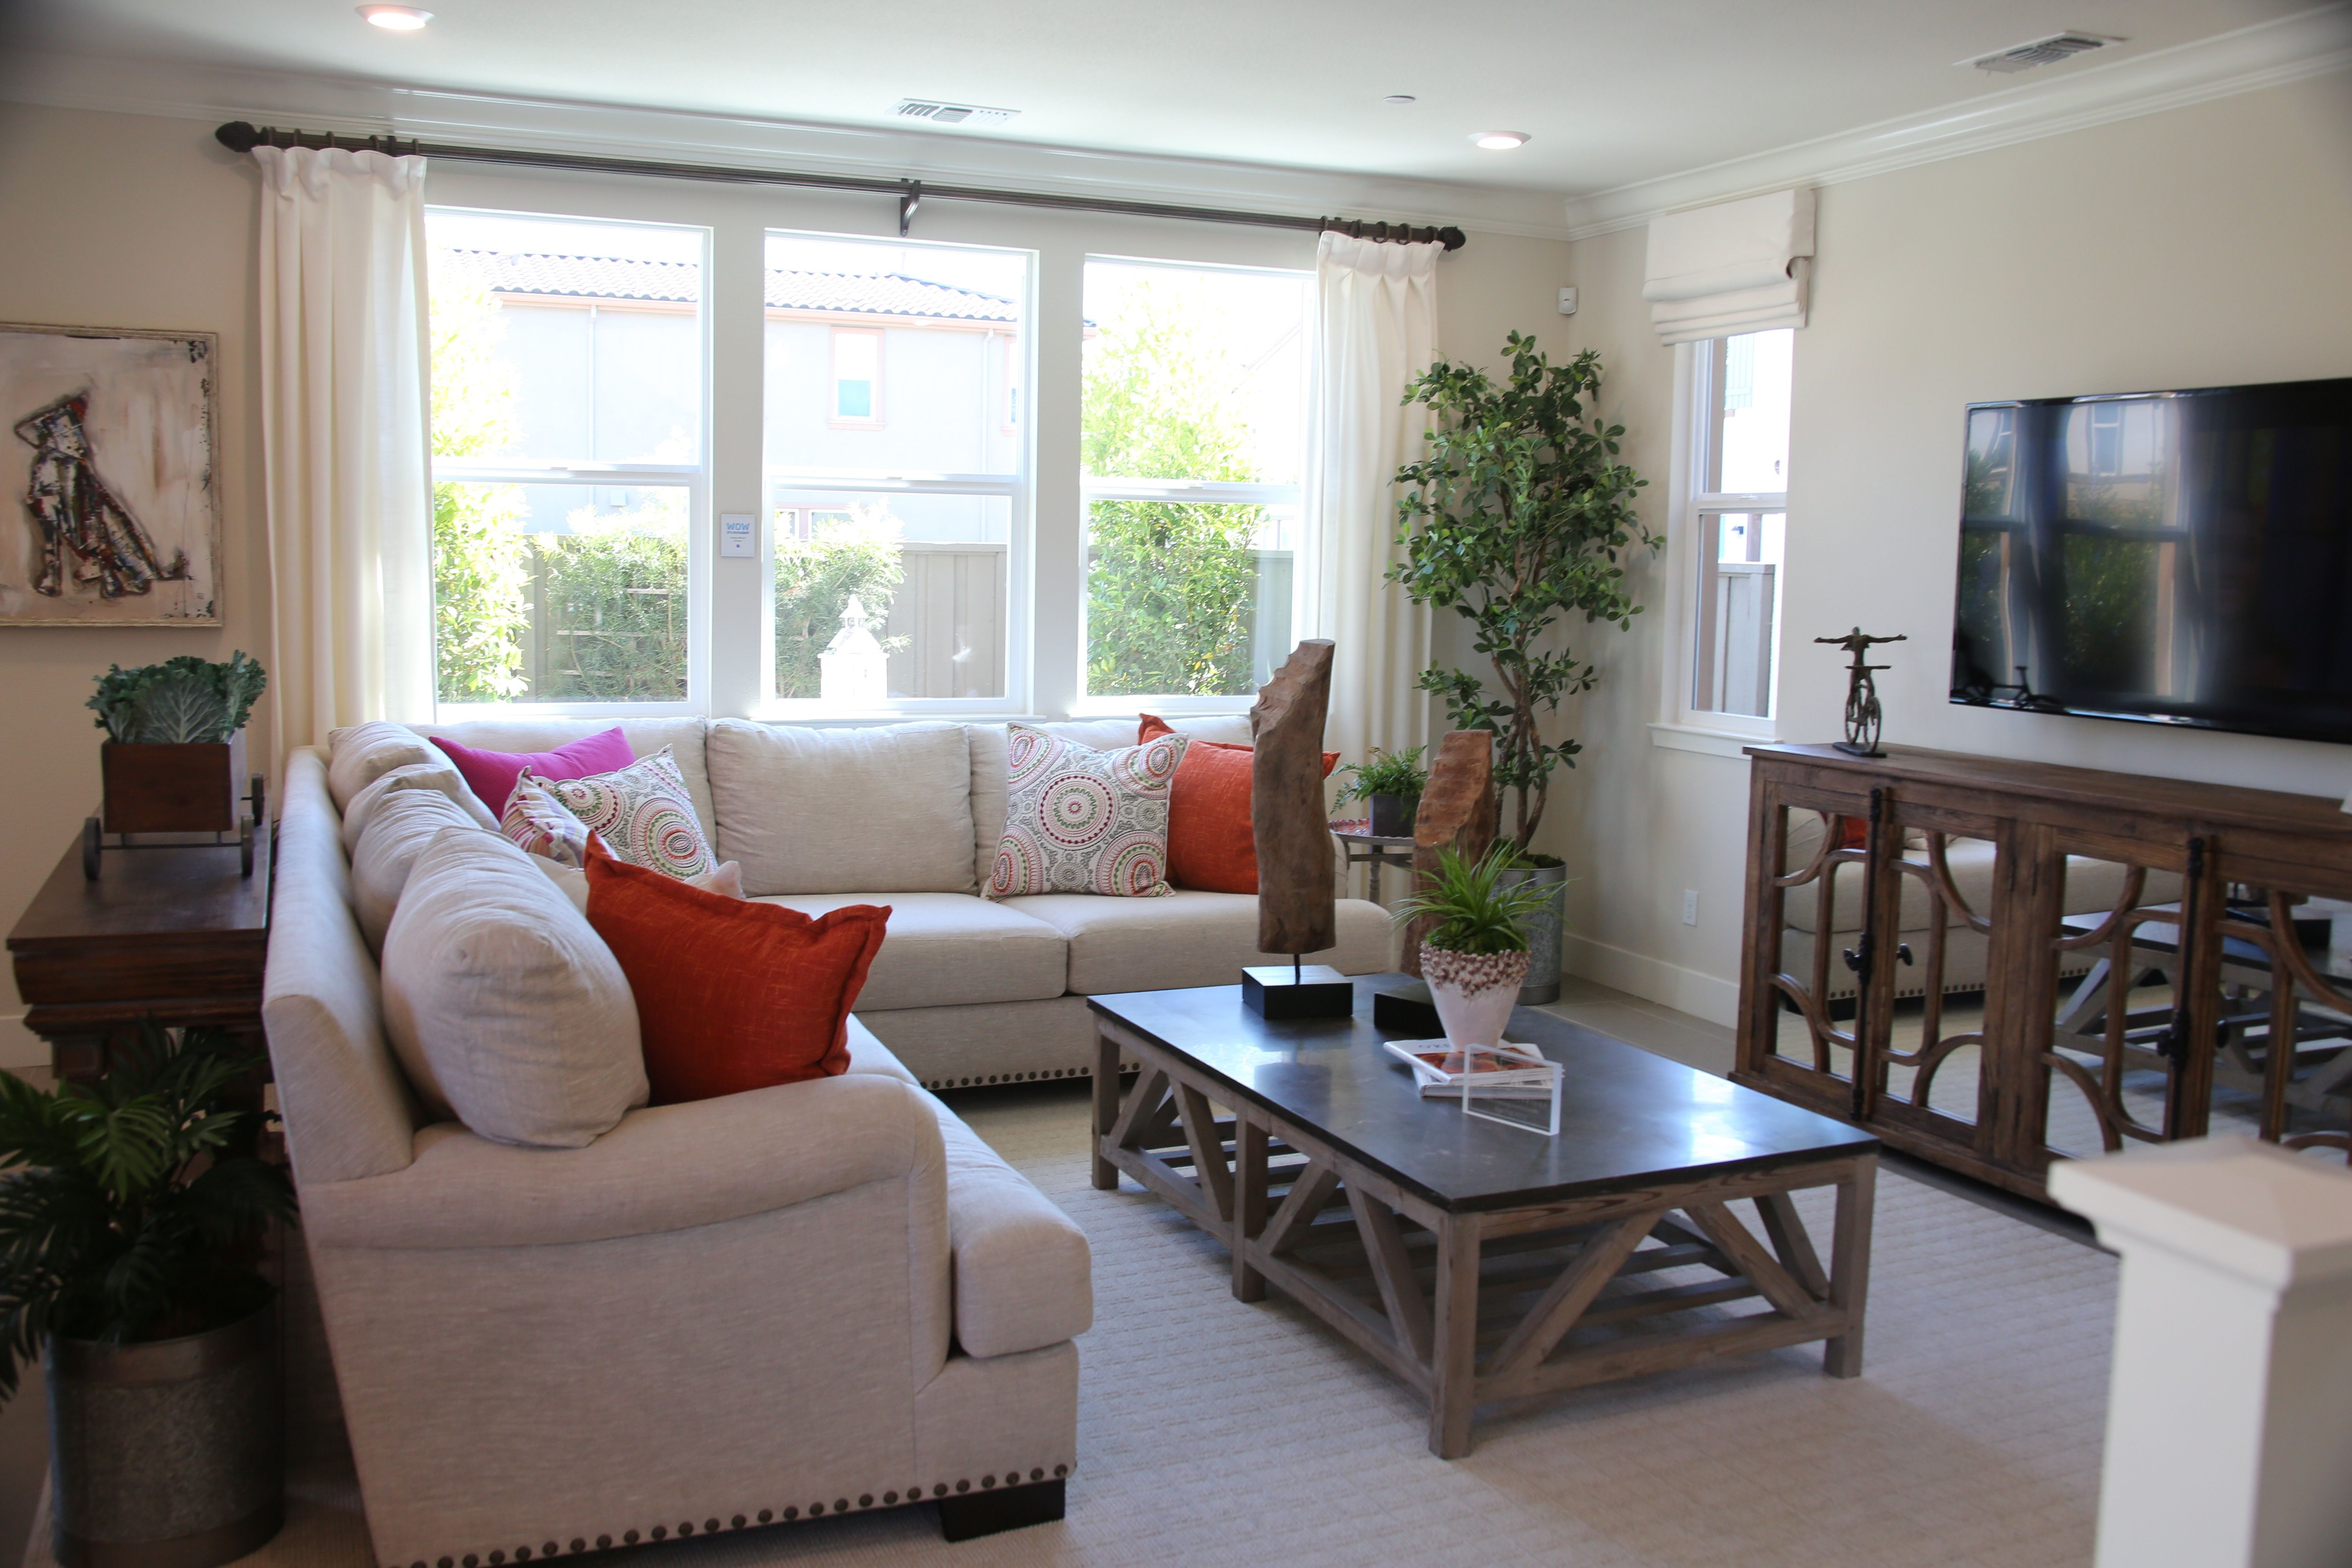 Model home in marina shores lennar 39 s exquisite community - Model homes near me ...